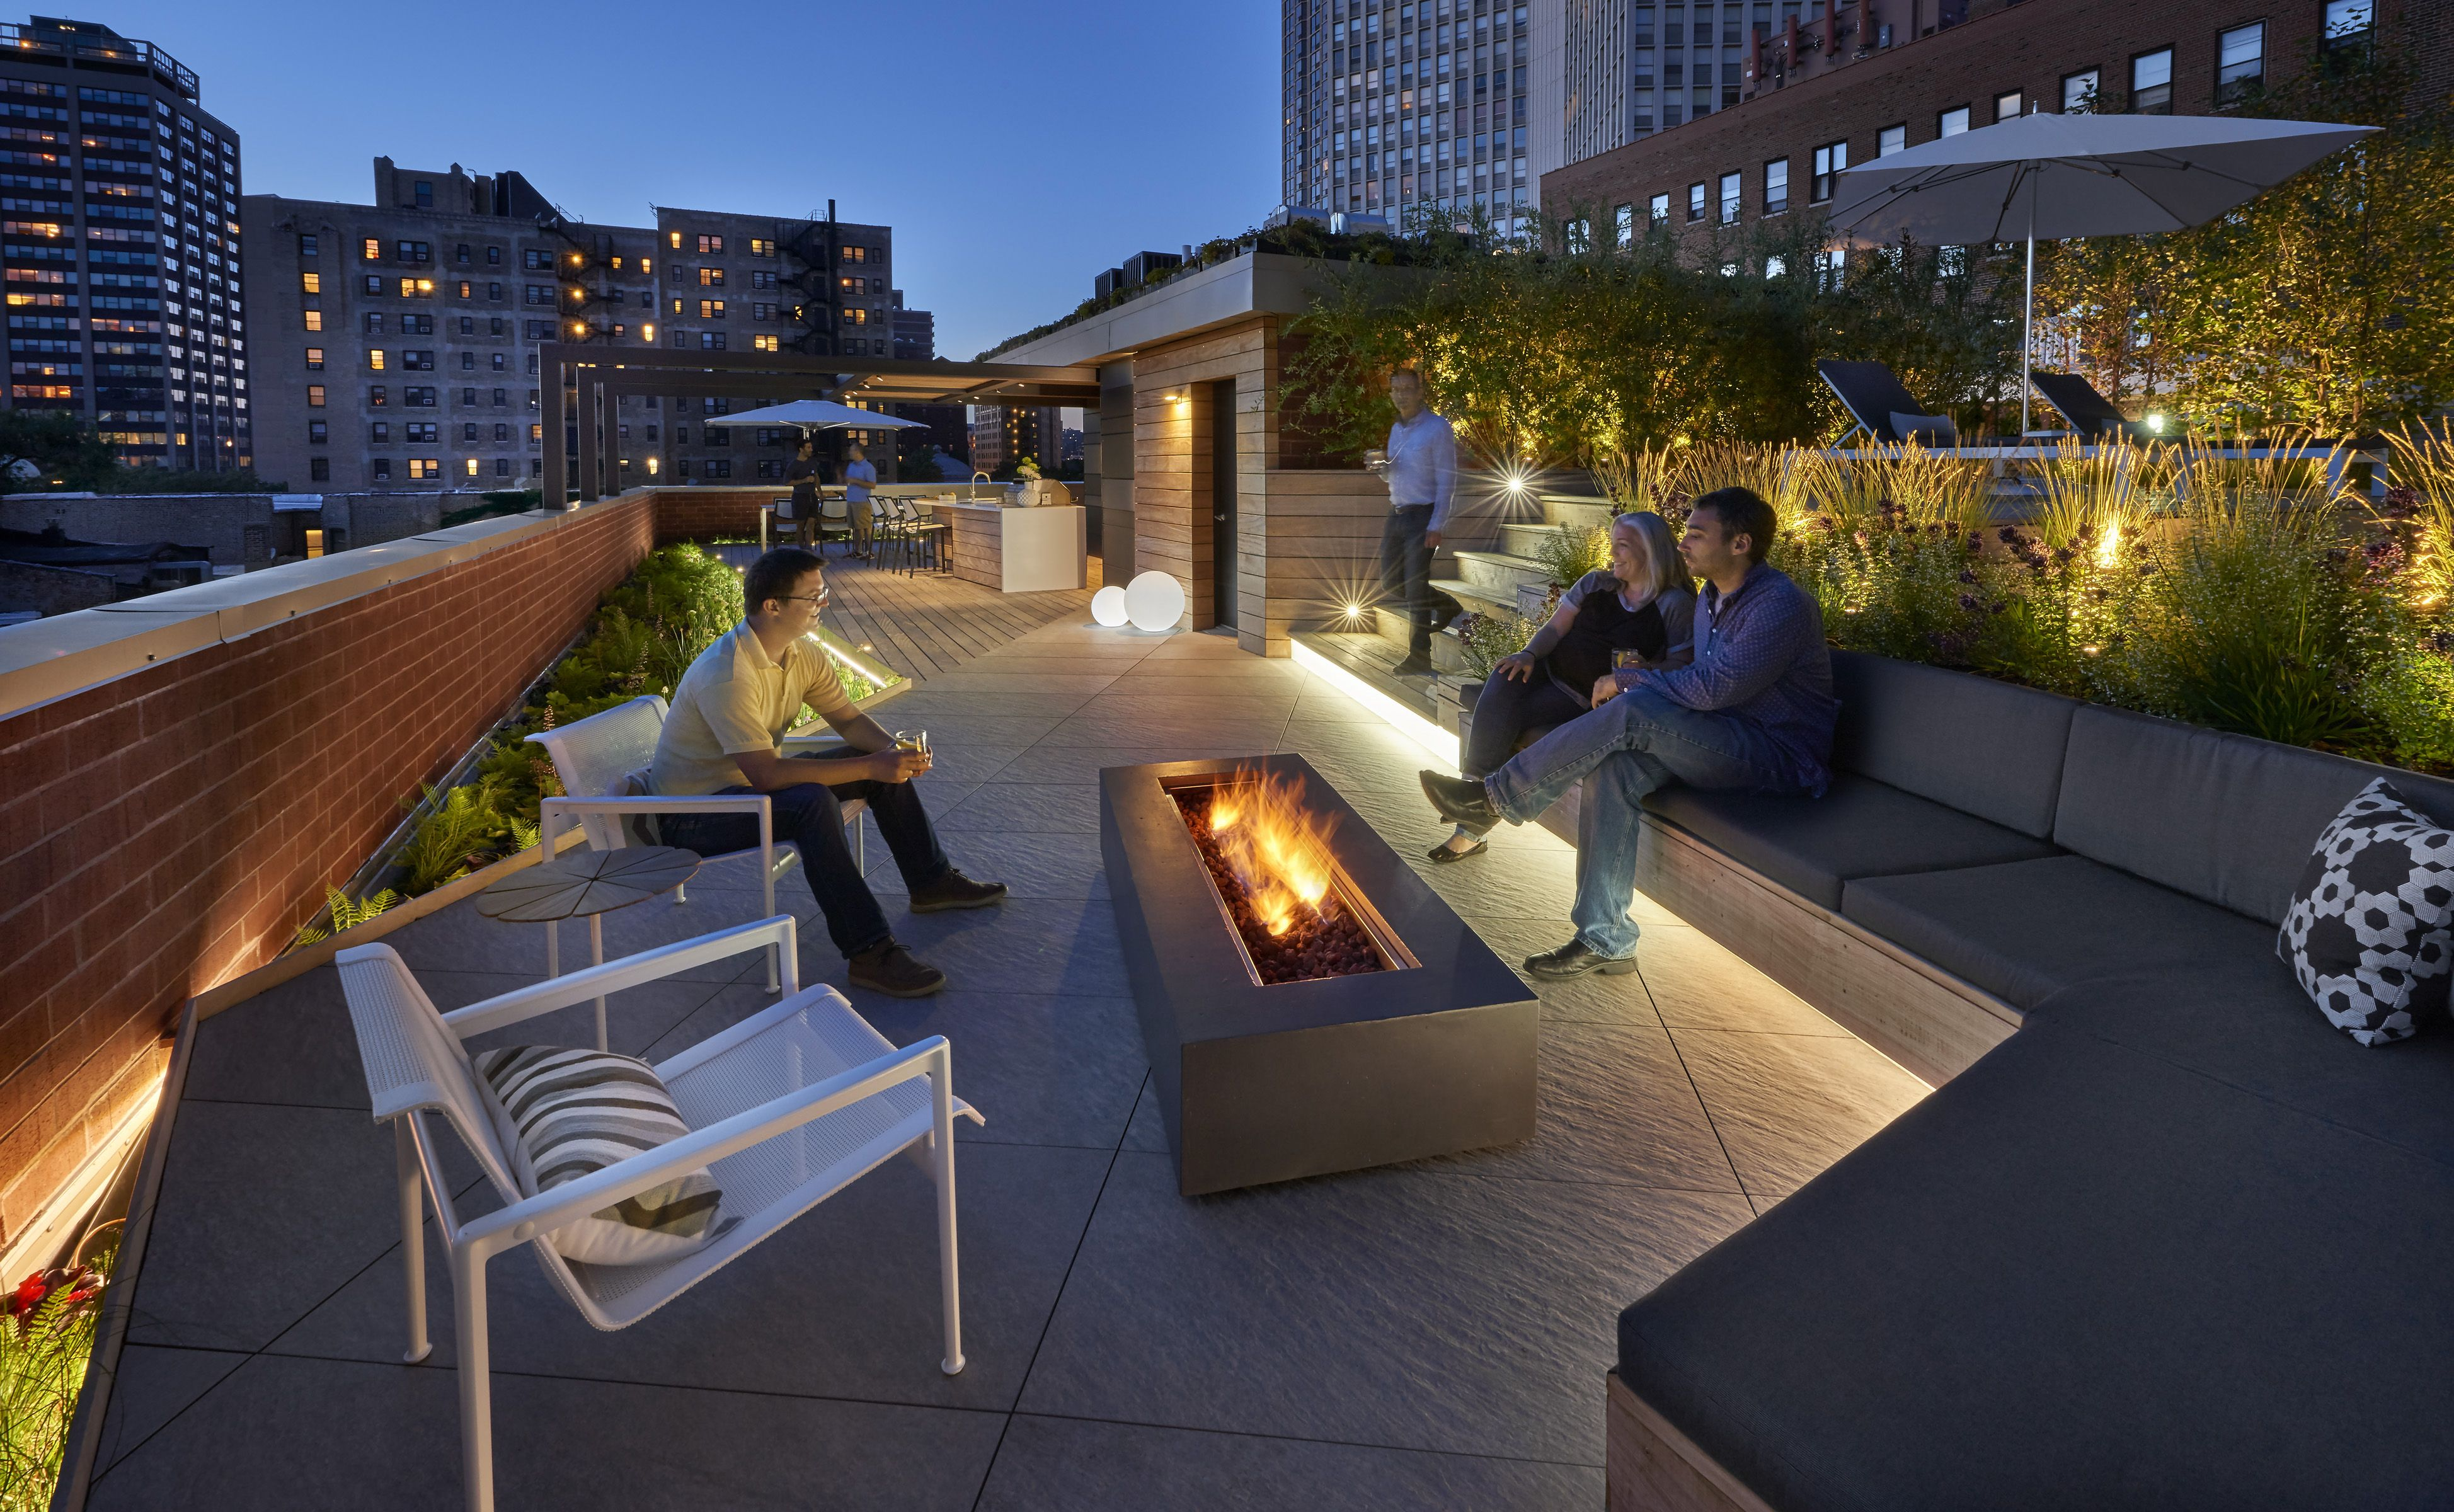 Dspace-rooftop Yard- Outdoor Lounge With Fire Pit Dspace